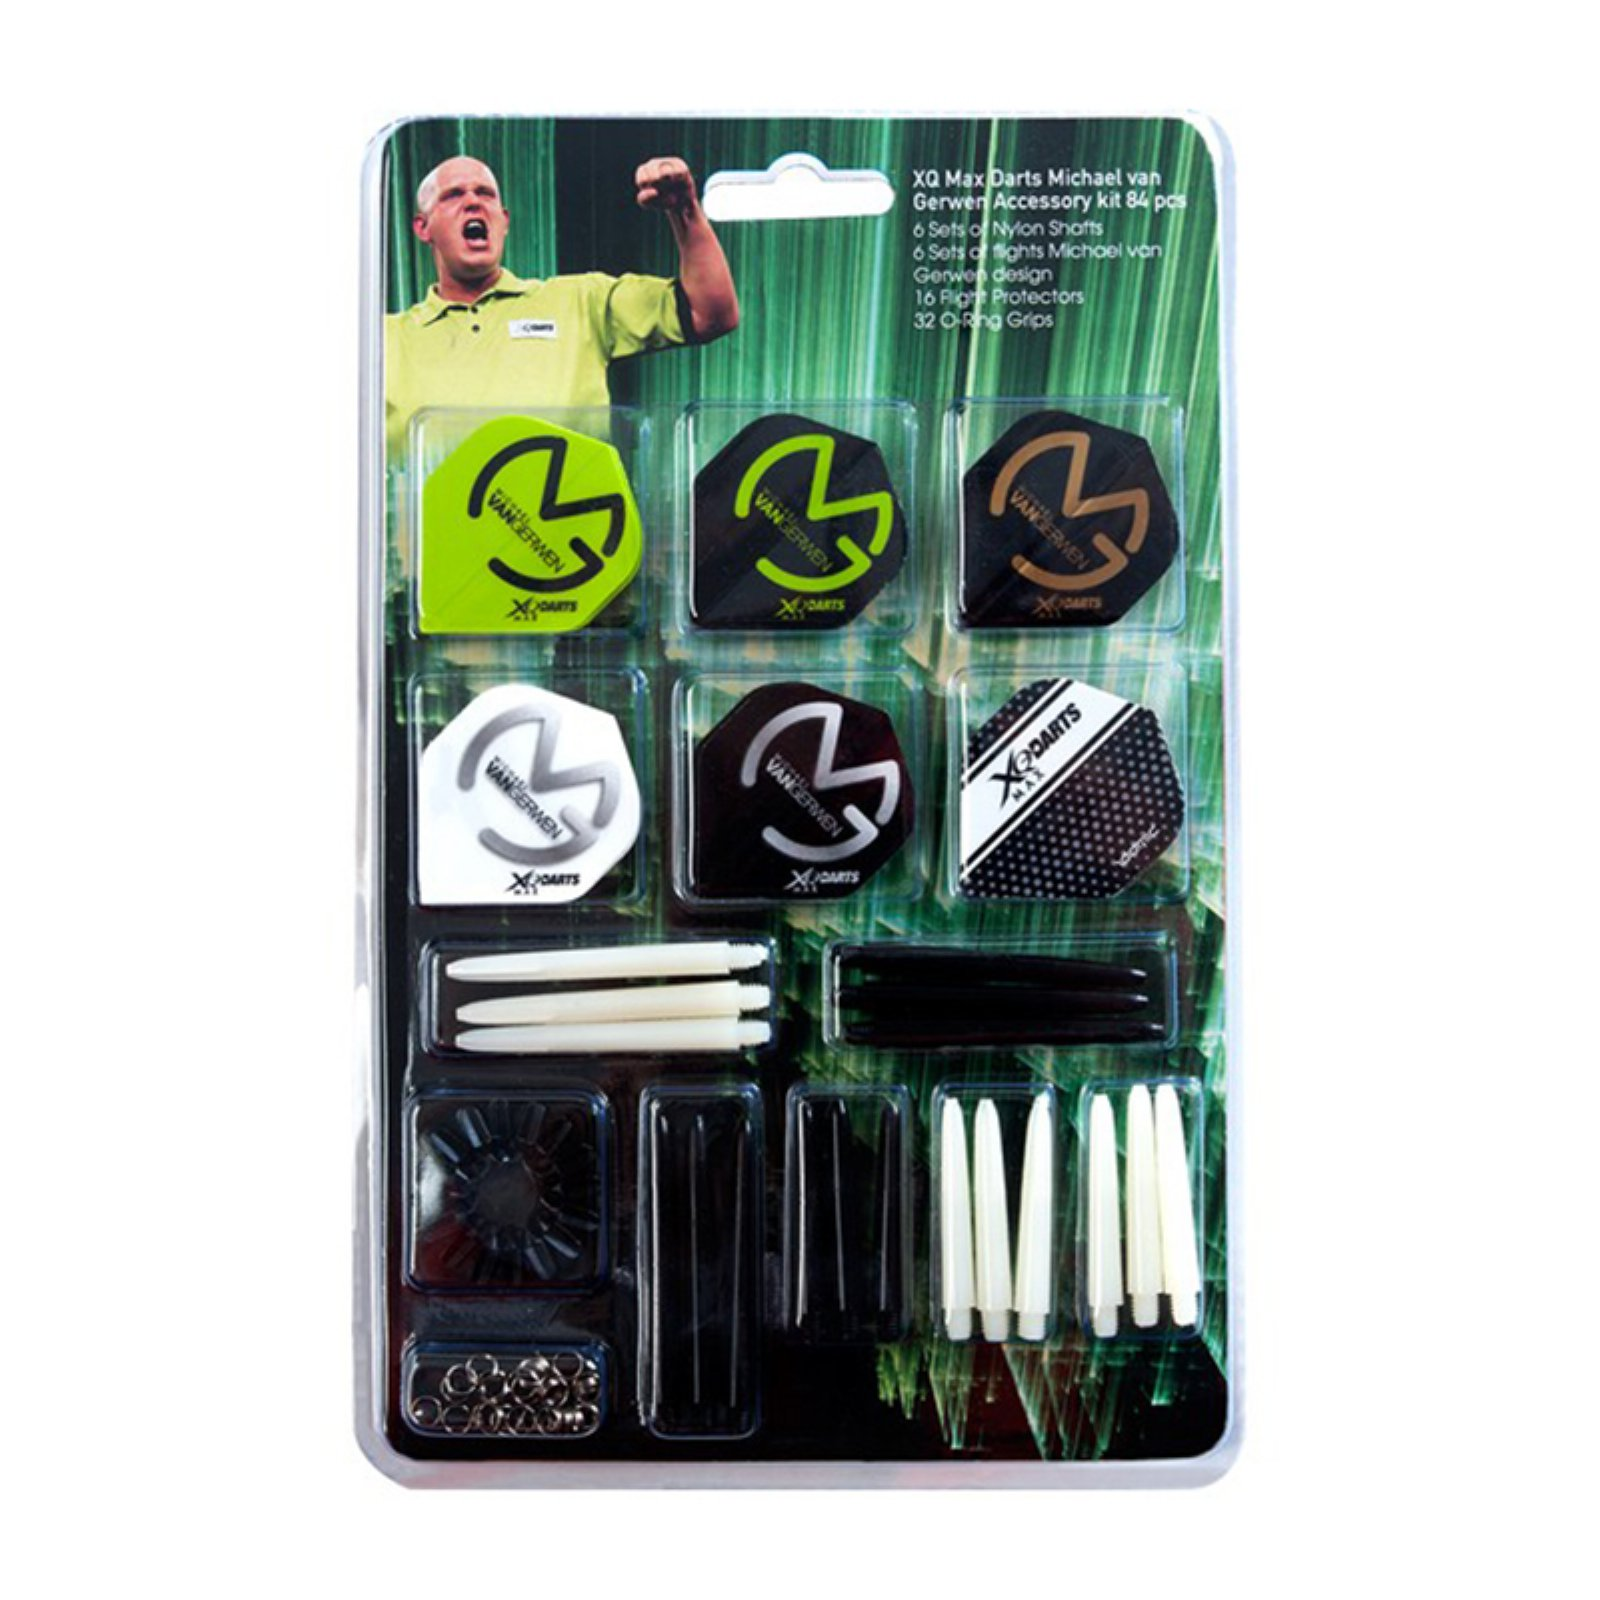 XQ Max Darts Michael Van Gerwen MvG 84 Piece Dart Accessory Kit